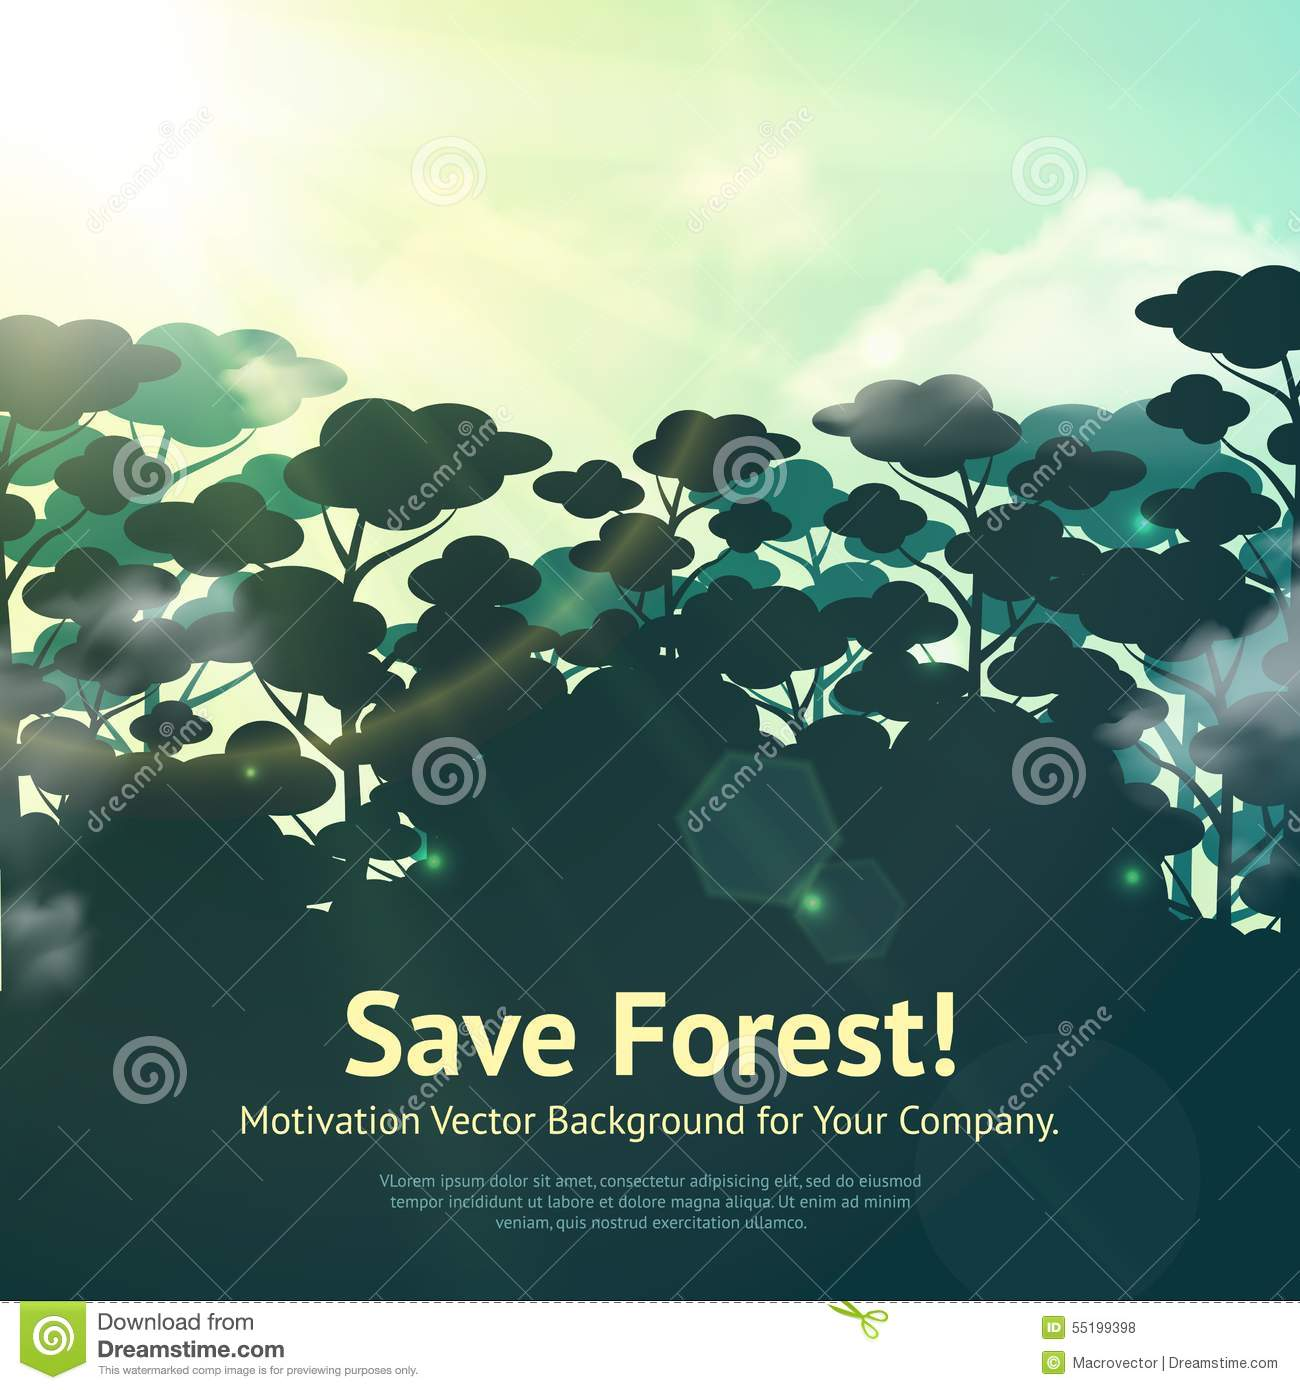 Without water, there is absolutely … Save Forest Illustration Stock Vector Illustration Of Motivation 55199398